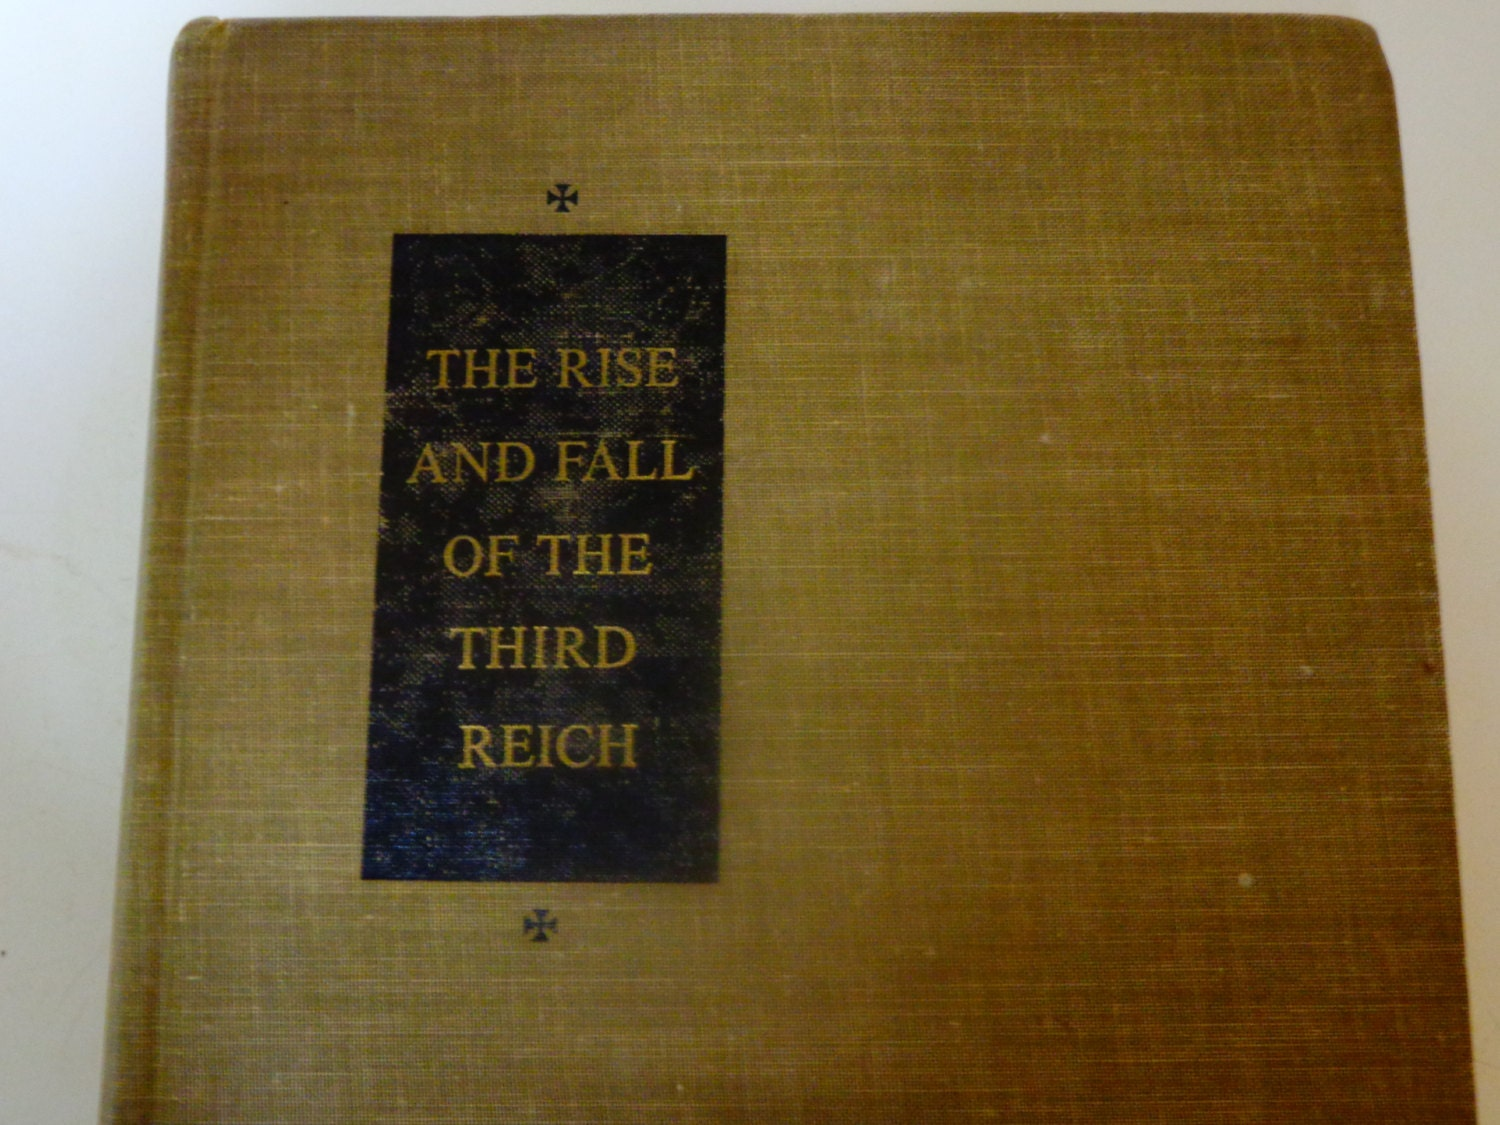 the fall of the third reich Buy a cheap copy of the rise and fall of the third reich: a book by william l shirer before the nazies could destroy the files, famed foreign correspondent and historian william l shirer sifted through the massive self-documentation of the third.